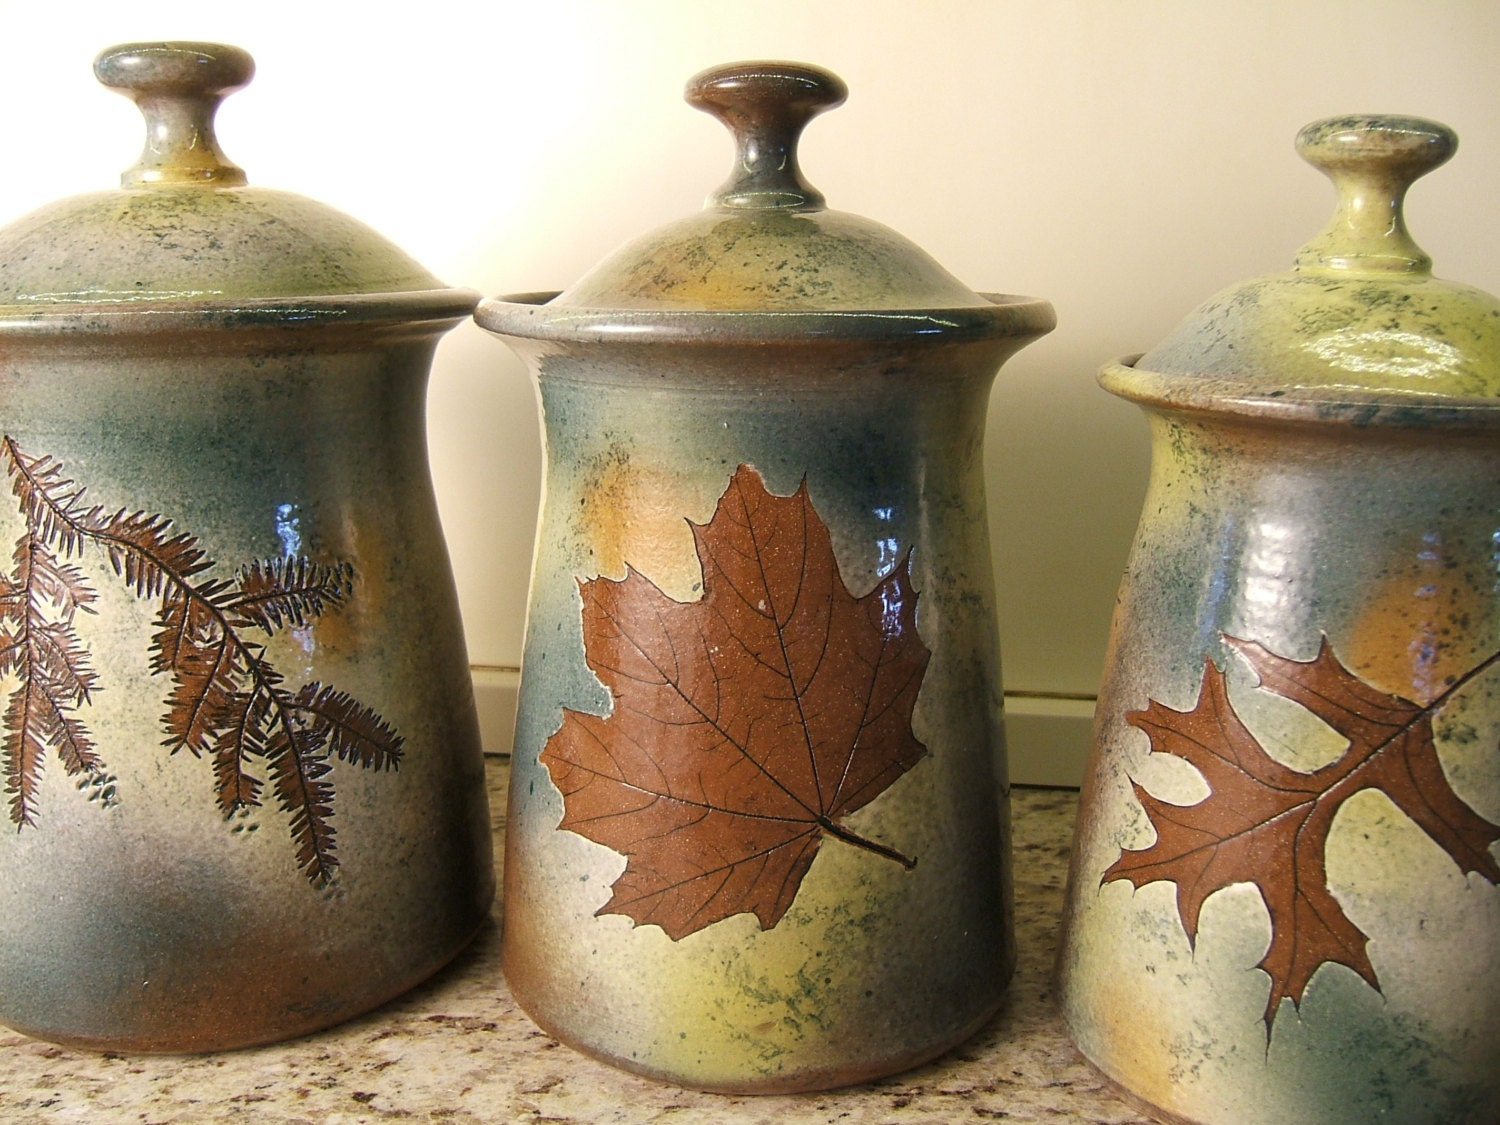 Kitchen Canister Sets Canister Set Lidded Jars Kitchen Canisters With Tree Leaves In